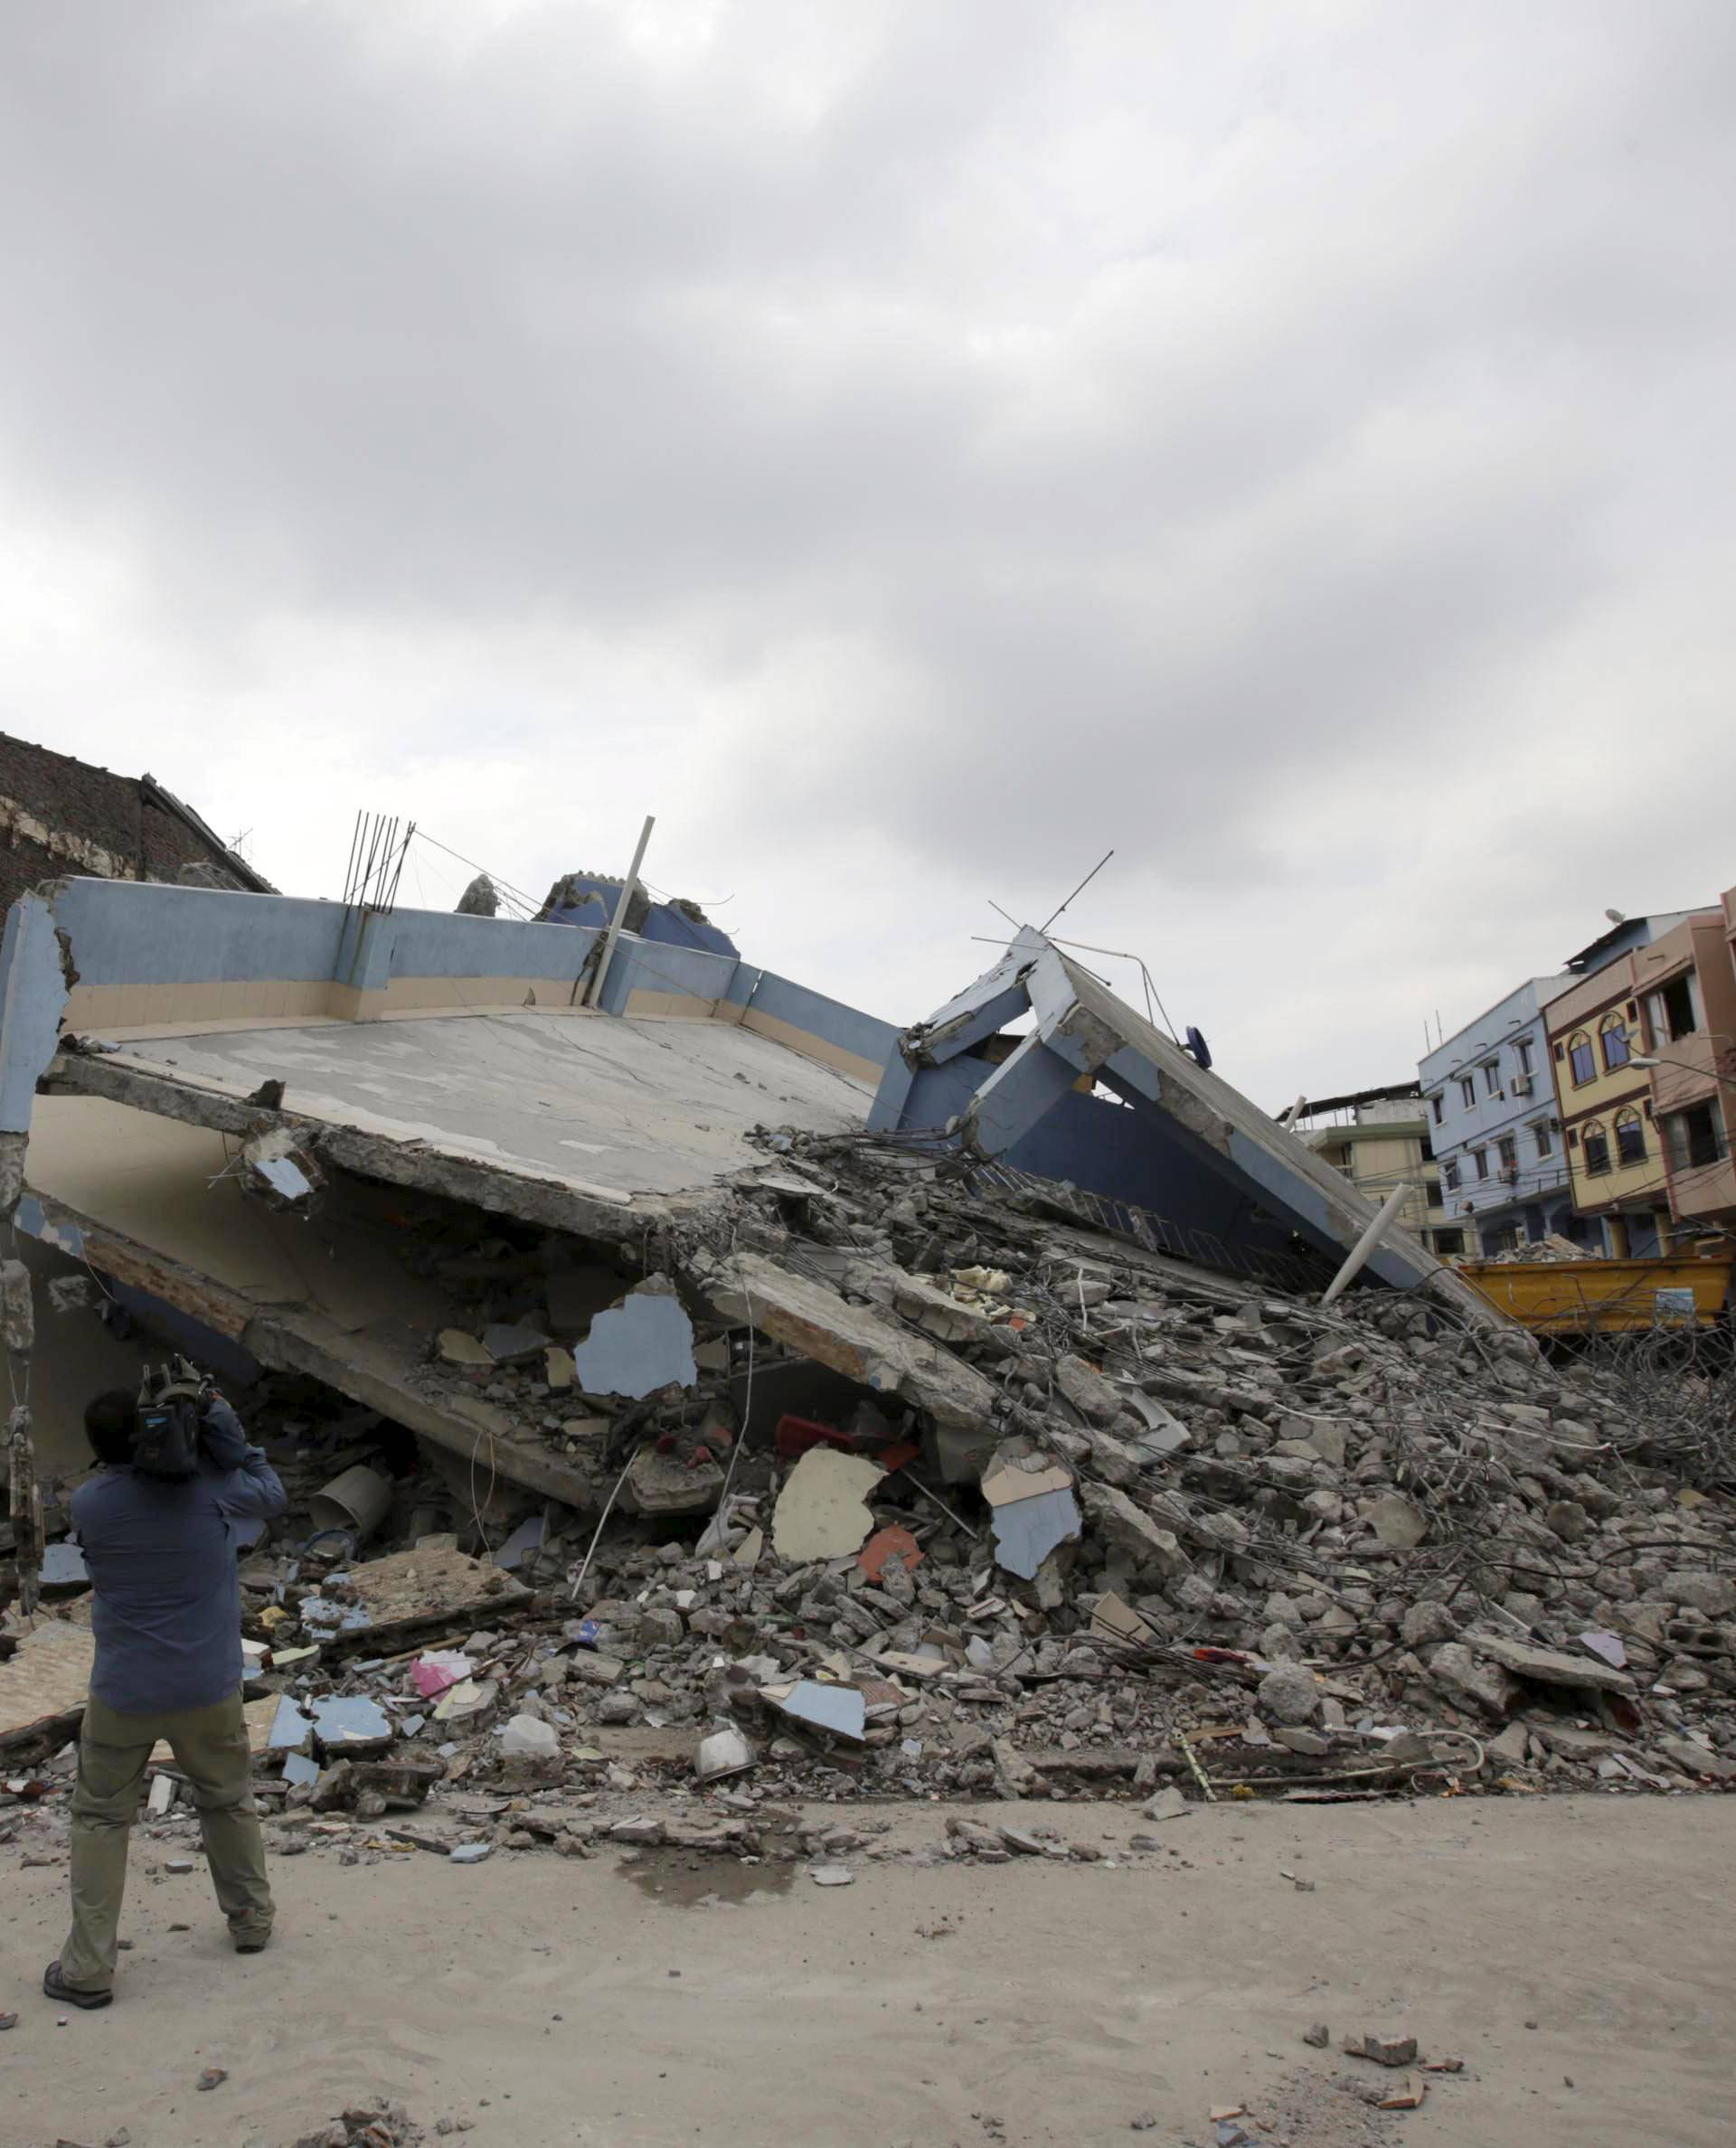 A television cameraman films a collapsed building in Guayaquil after an earthquake struck off the Pacific coast in Ecuador